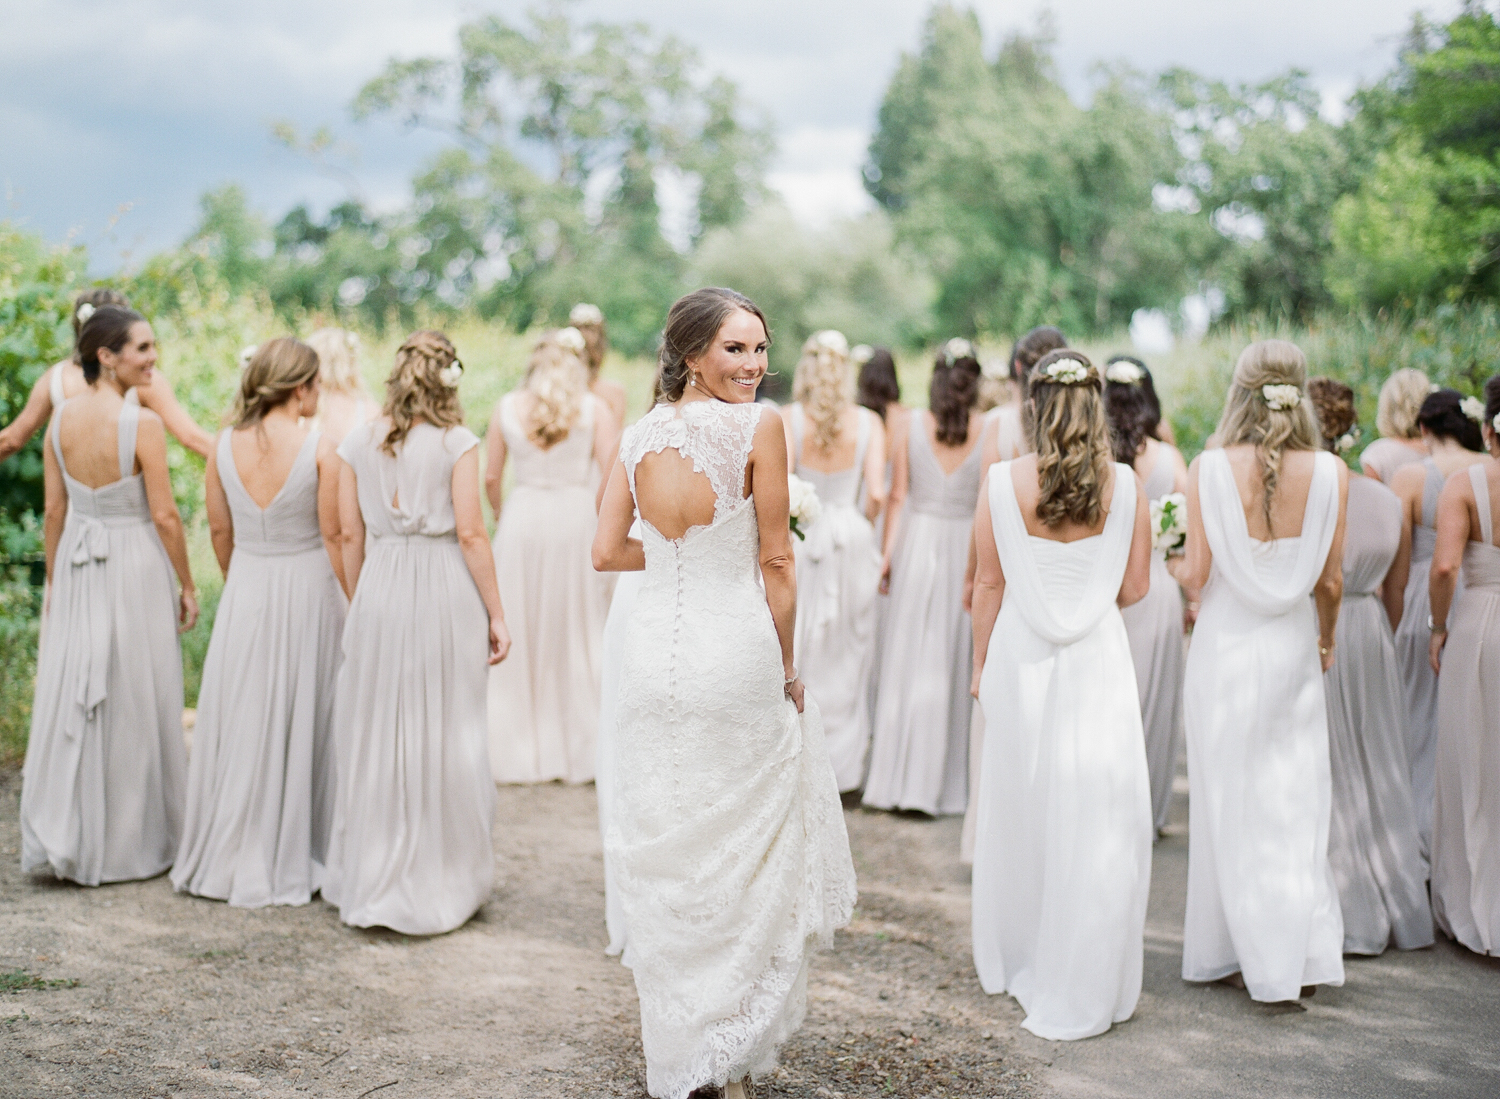 Bride in backless lace Anna Maier gown with 27 bridesmaids in neutral Monique Lhuillier gowns; Sylvie Gil Photography